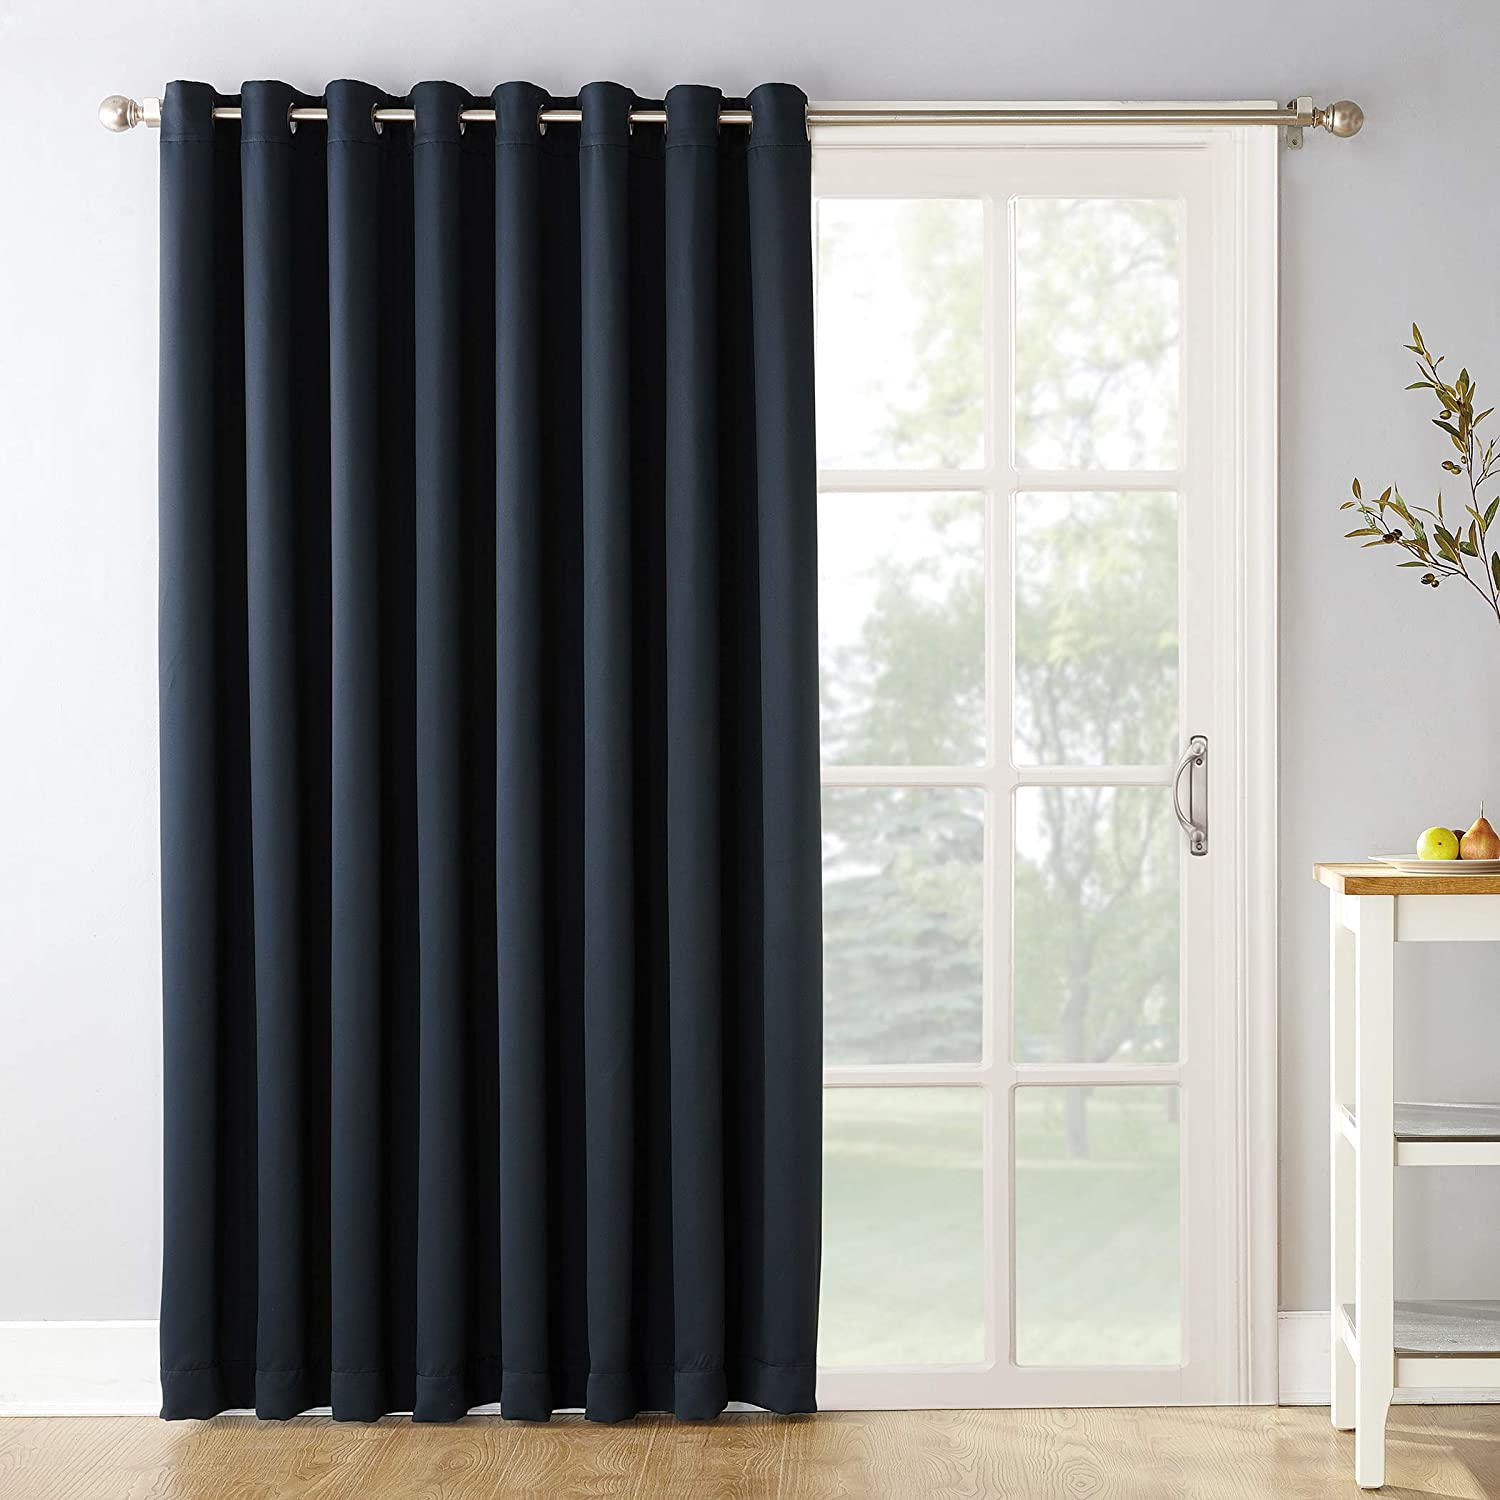 """Sun Zero Easton Extra-Wide Blackout Sliding Patio Door Curtain Panel with Pull Wand, 100"""" x 84"""", Navy Blue"""